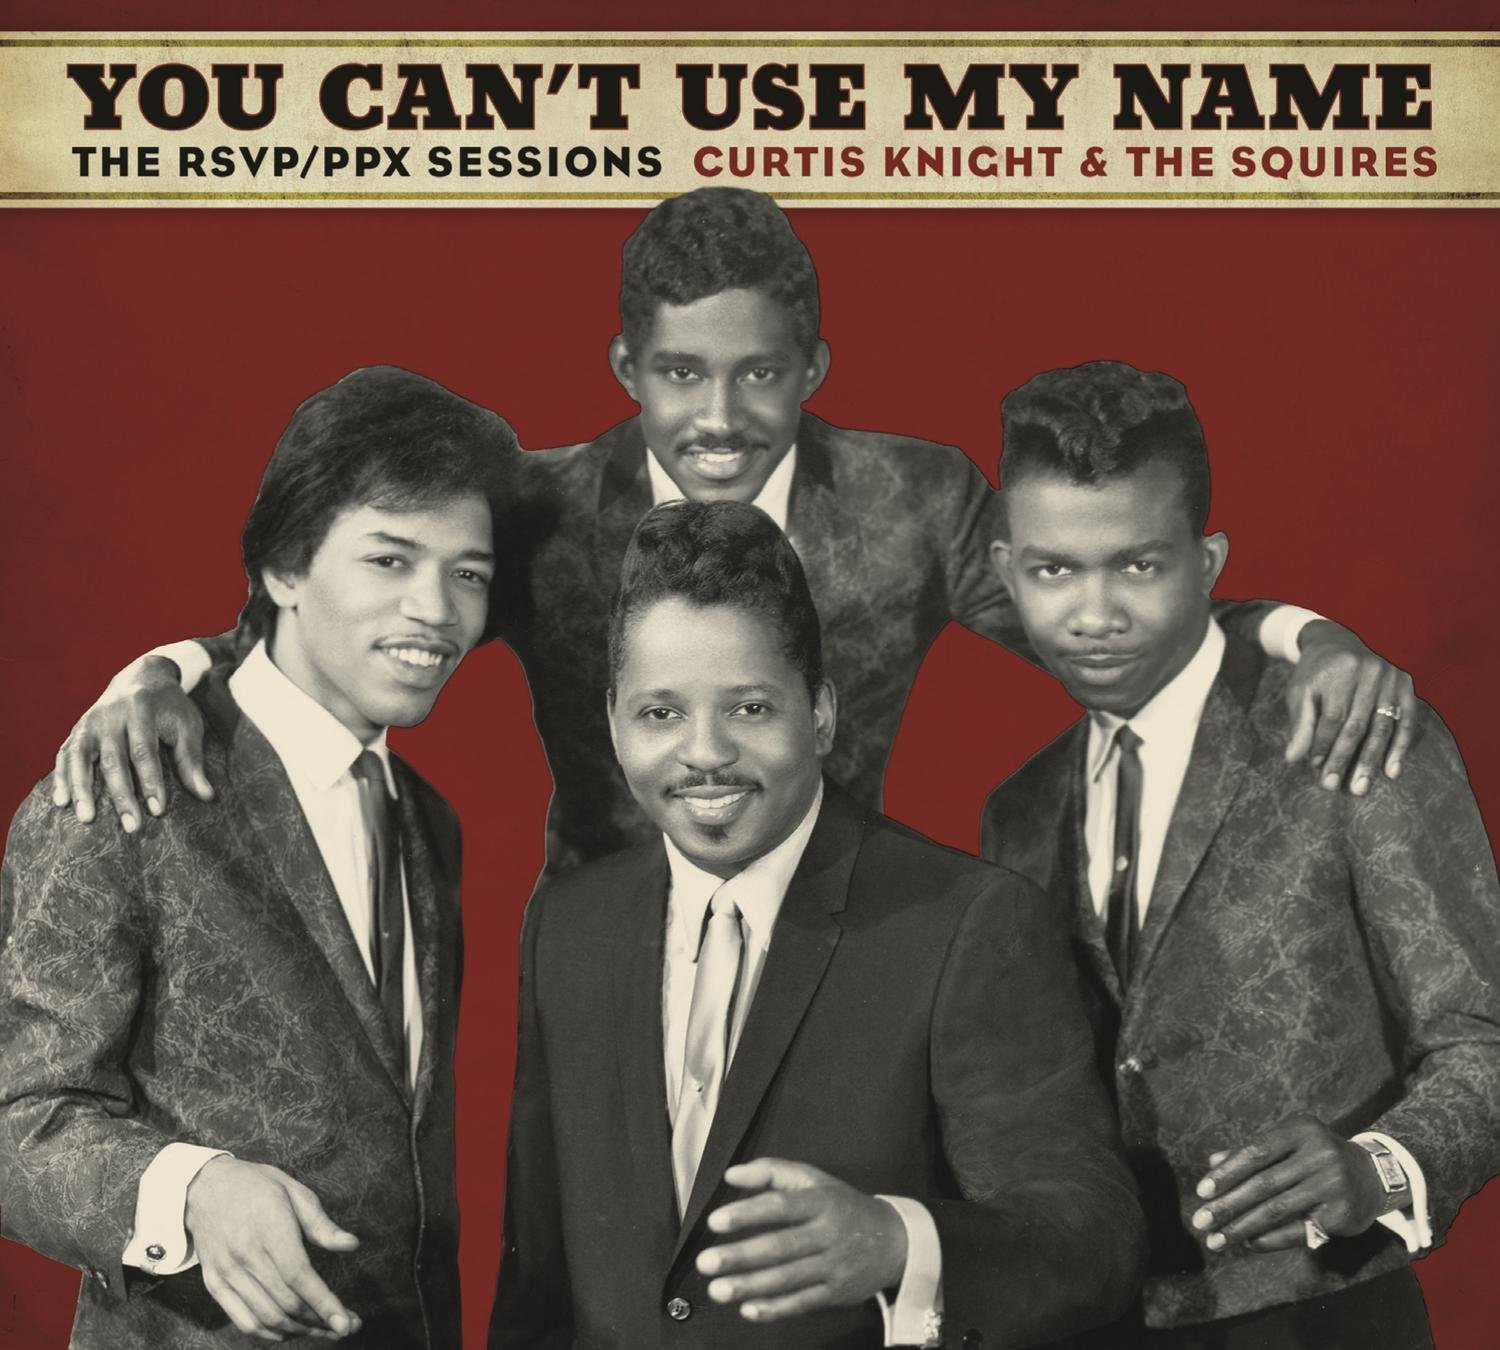 Curtis Knight & The Squires featuring Jimi Hendrix